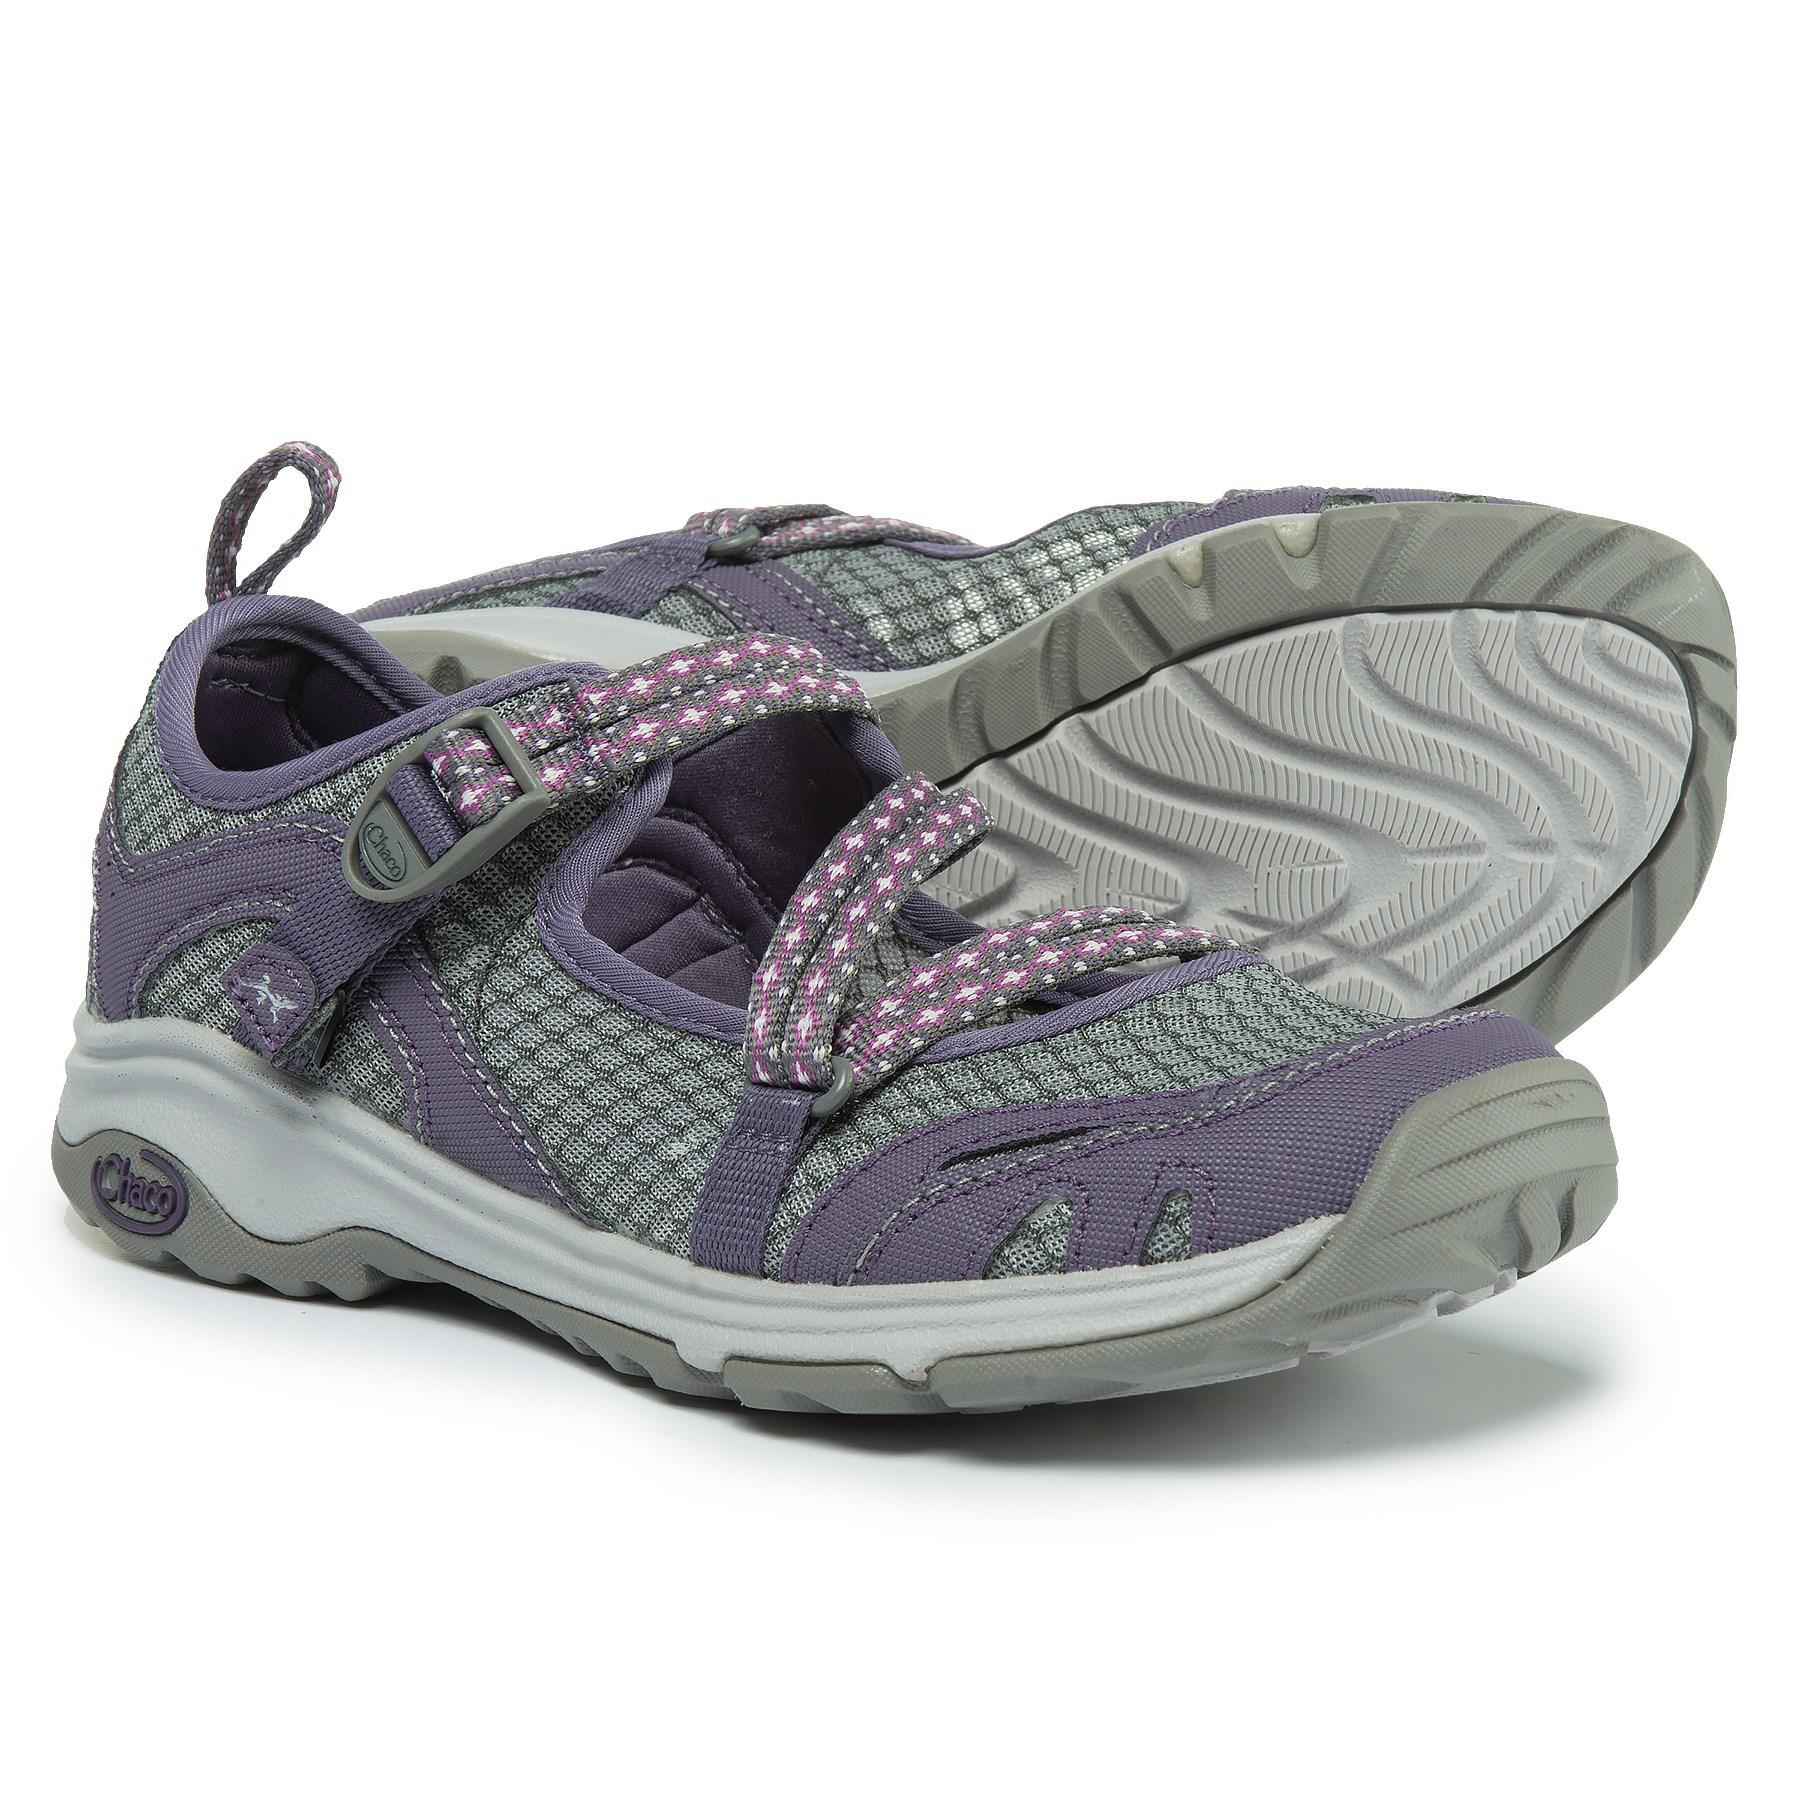 7a4316e7c6d8 Chaco - Gray Outcross Evo Mary Jane Water Shoes (for Women) - Lyst. View  fullscreen